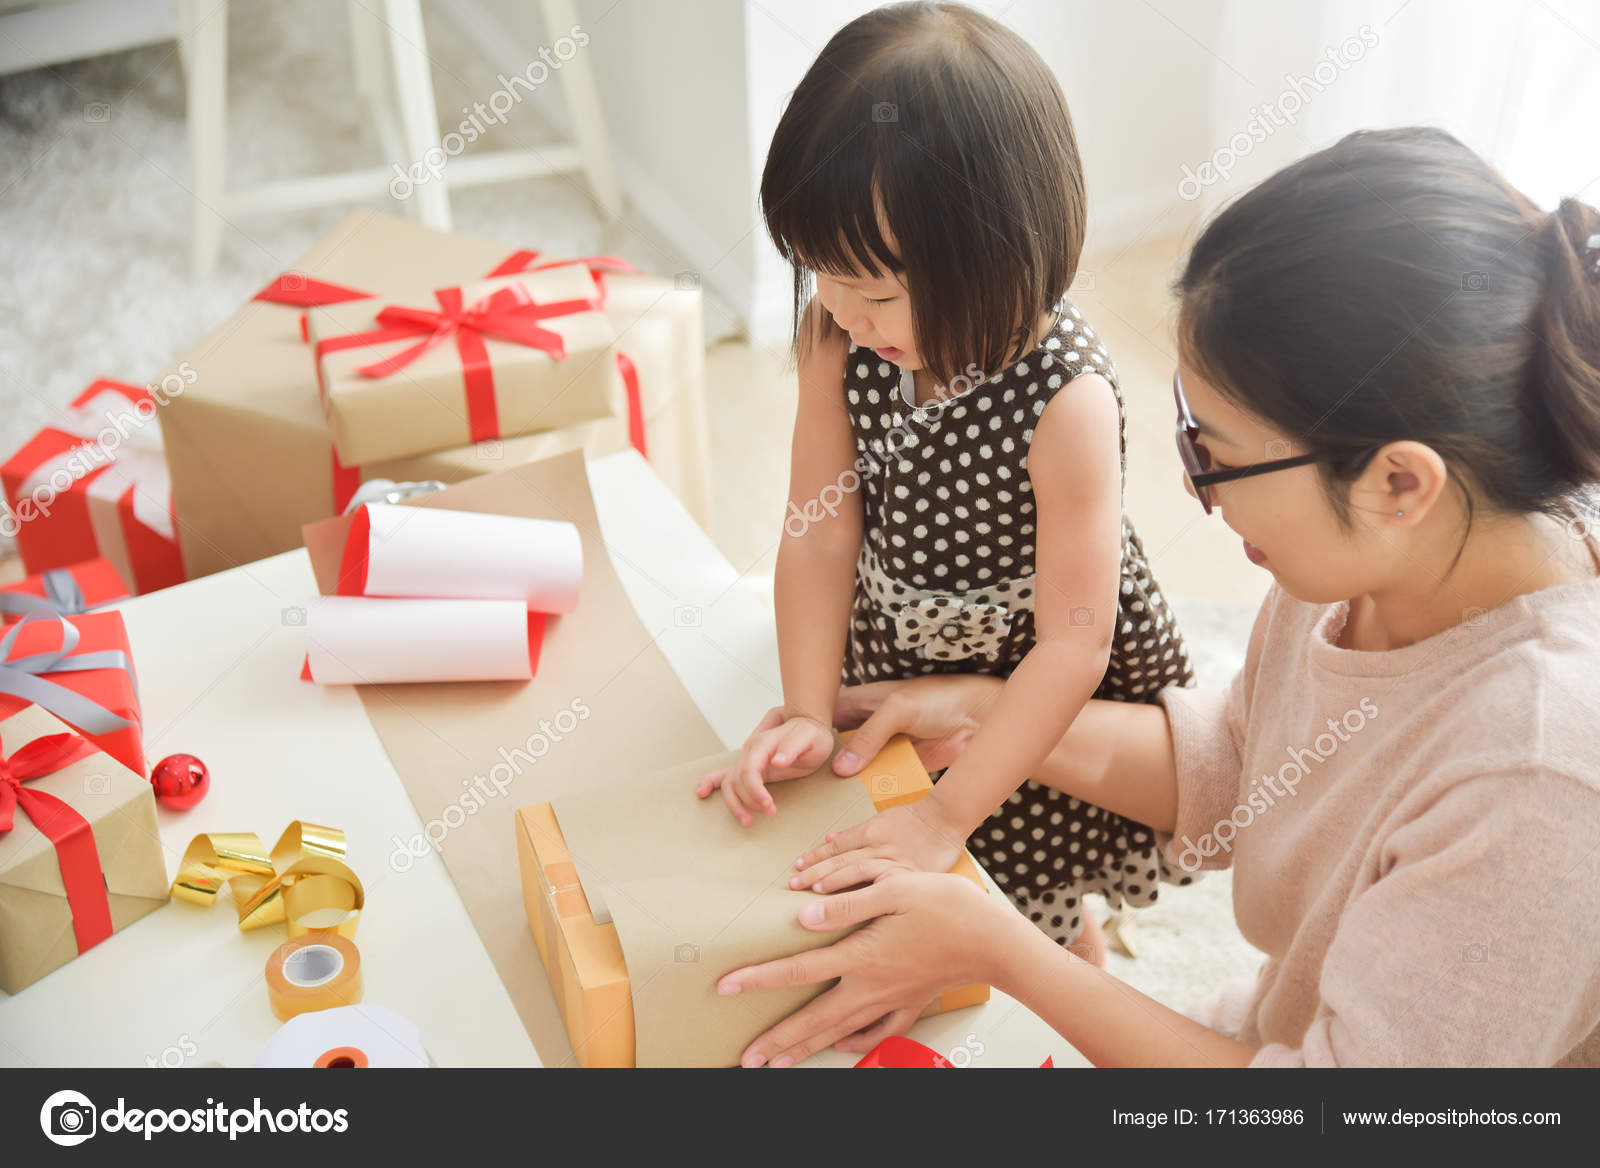 Young Mother And Her Daughter Wrapping A Gift Box For Birthday Christmas New Year In White Room Happy Asian Family At The House Copy Space